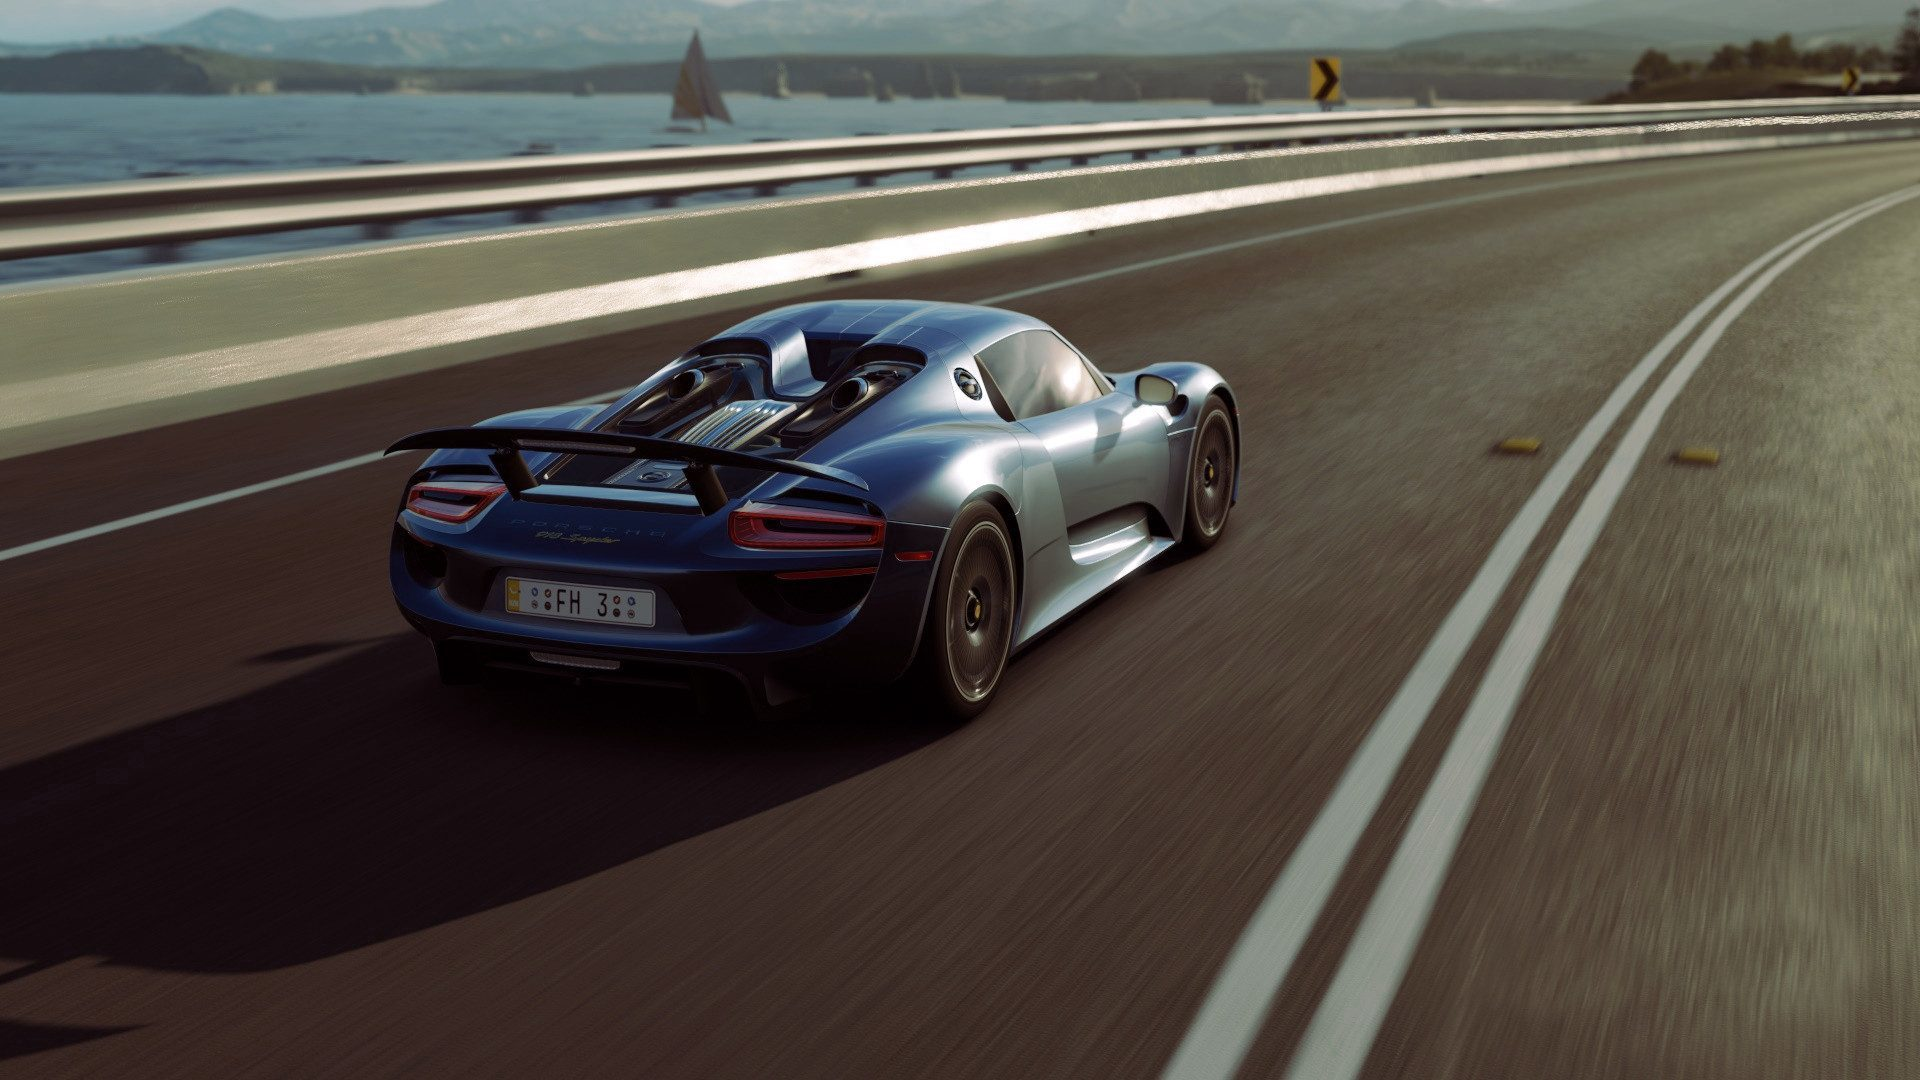 porsche 918 spyder forza horizon 2 forza horizon 2 porsche 918 spyder by ryofox630 on. Black Bedroom Furniture Sets. Home Design Ideas